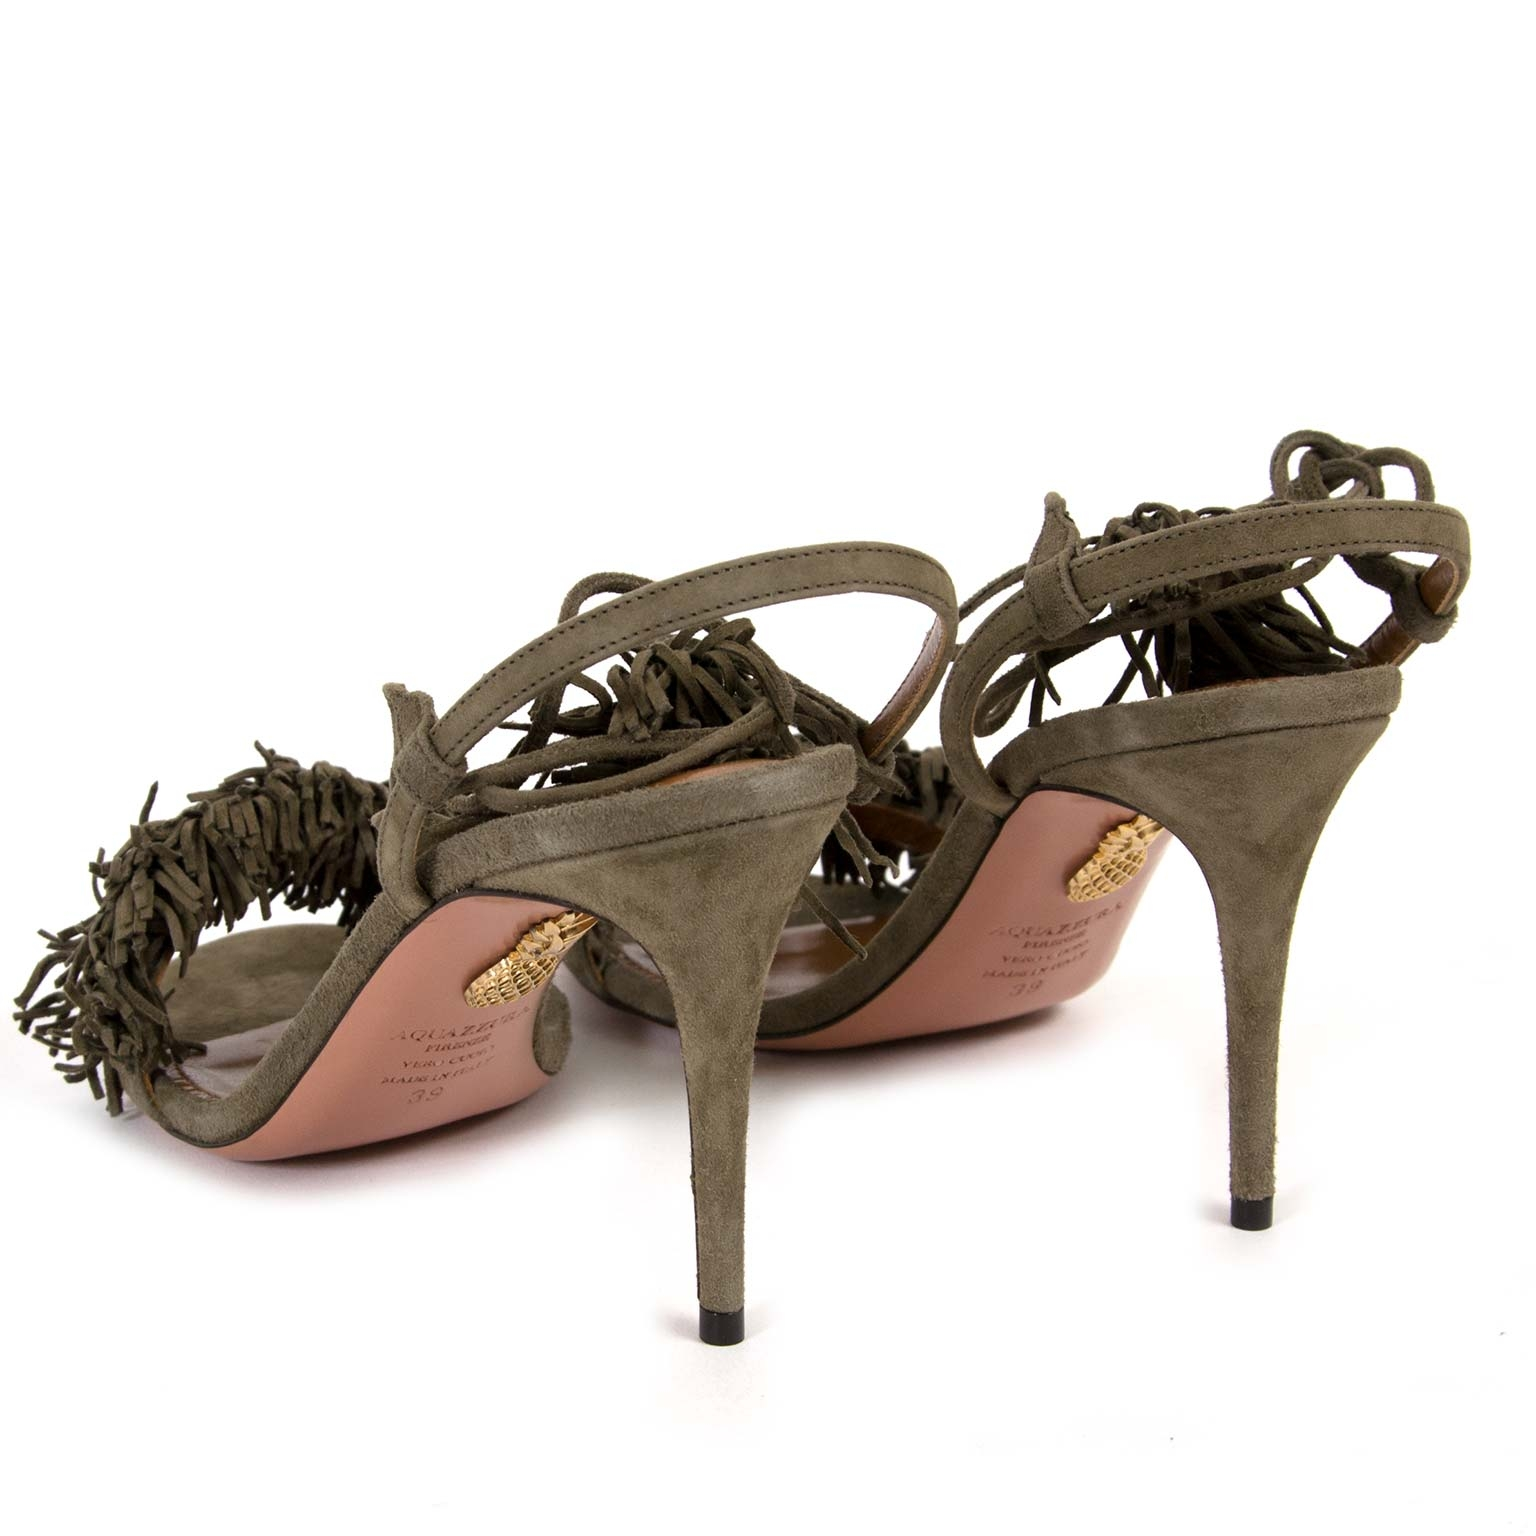 buy second hand authentic Aquazzura Wild Thing 85 Suede Truffle Sandal Heel - Size 39 at labellov vintage online store